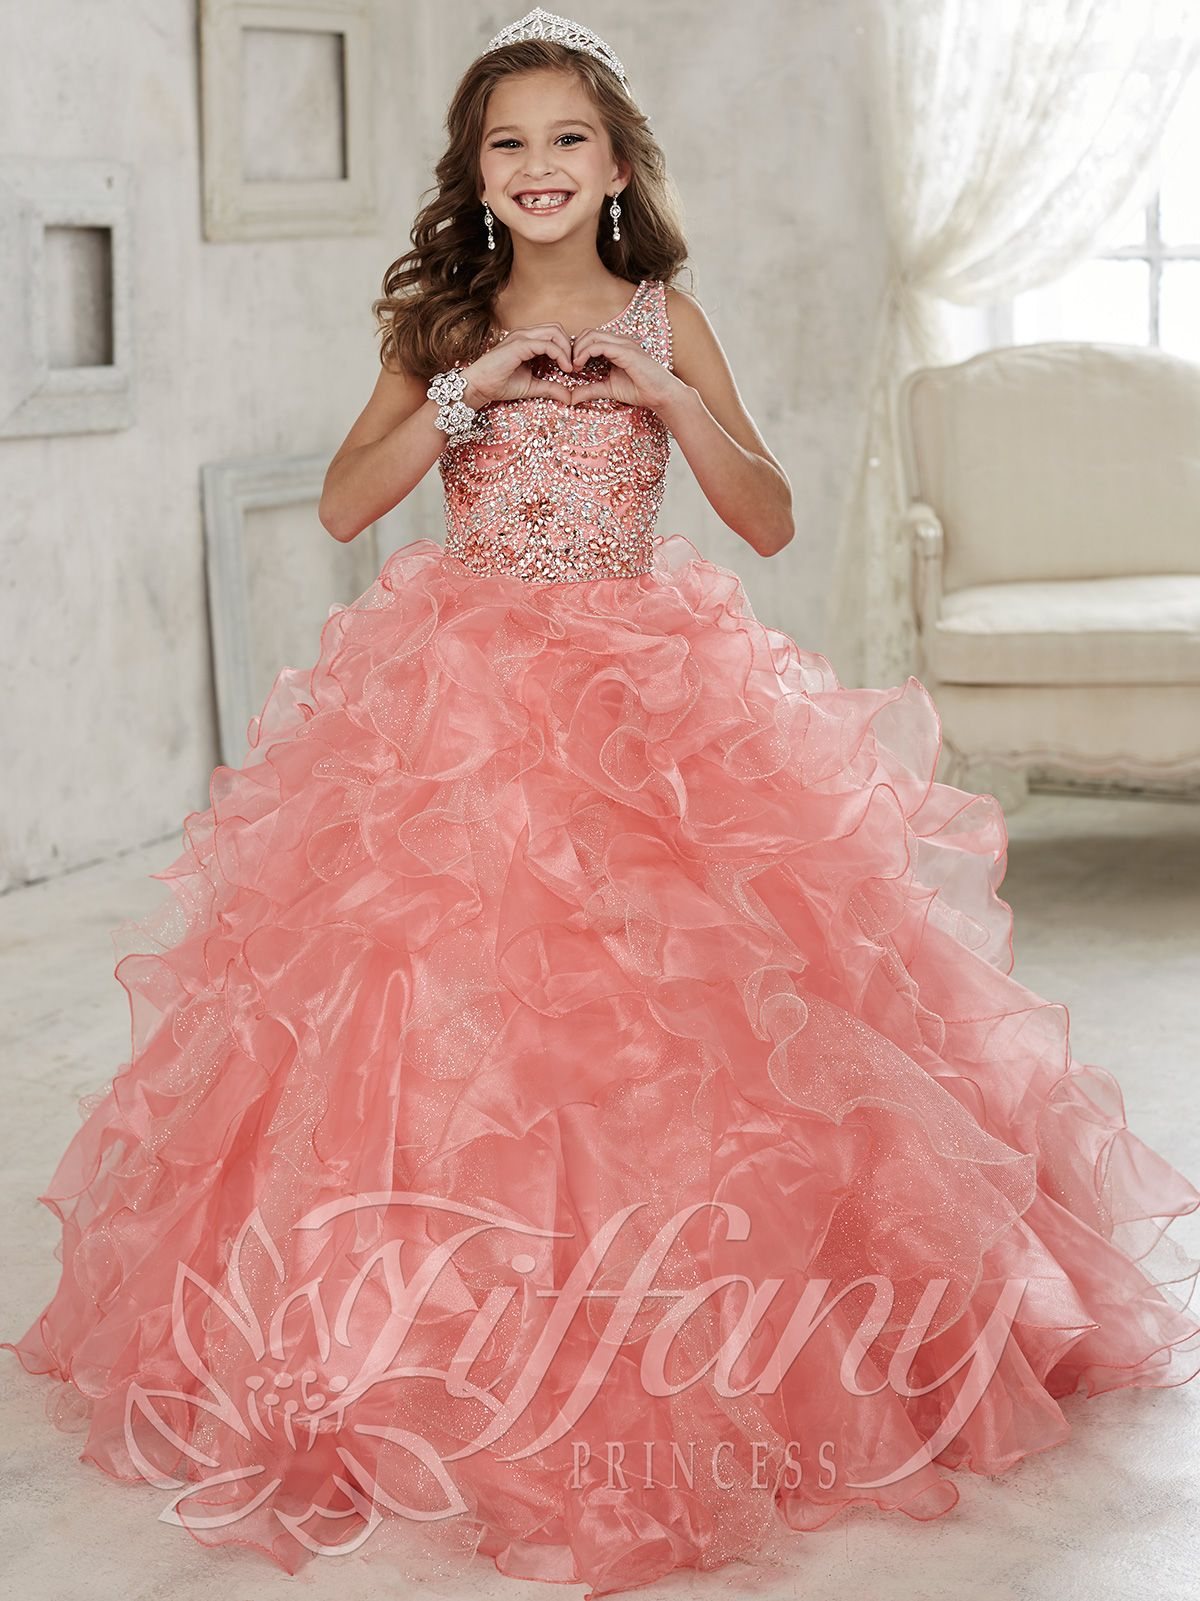 Tiffany Princess 13444 Scoop Neckline Girls Pageant Gown | uchami ...